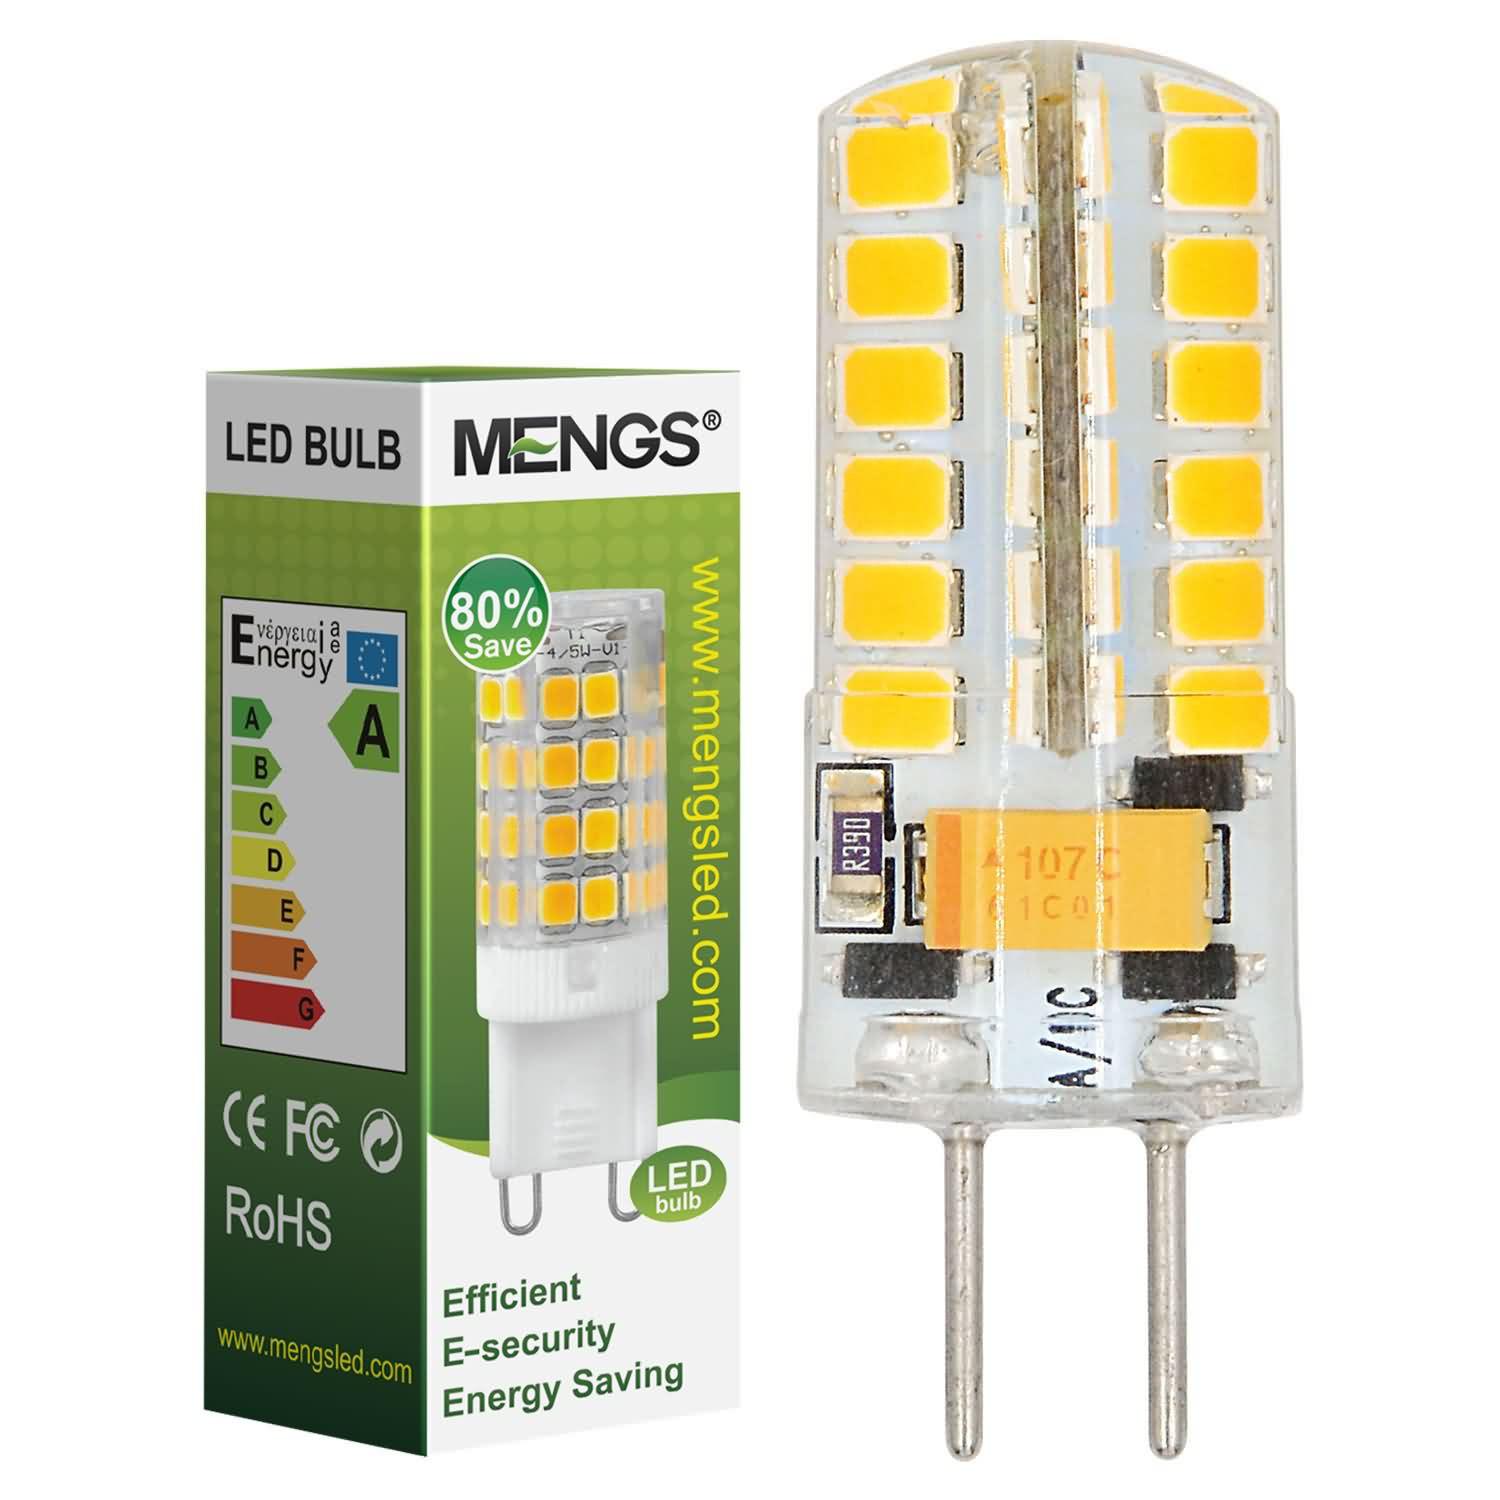 MENGS® GY6.35 4W LED Light 48x 2835 SMD LED Bulb Lamp In Warm White Energy-Saving Light